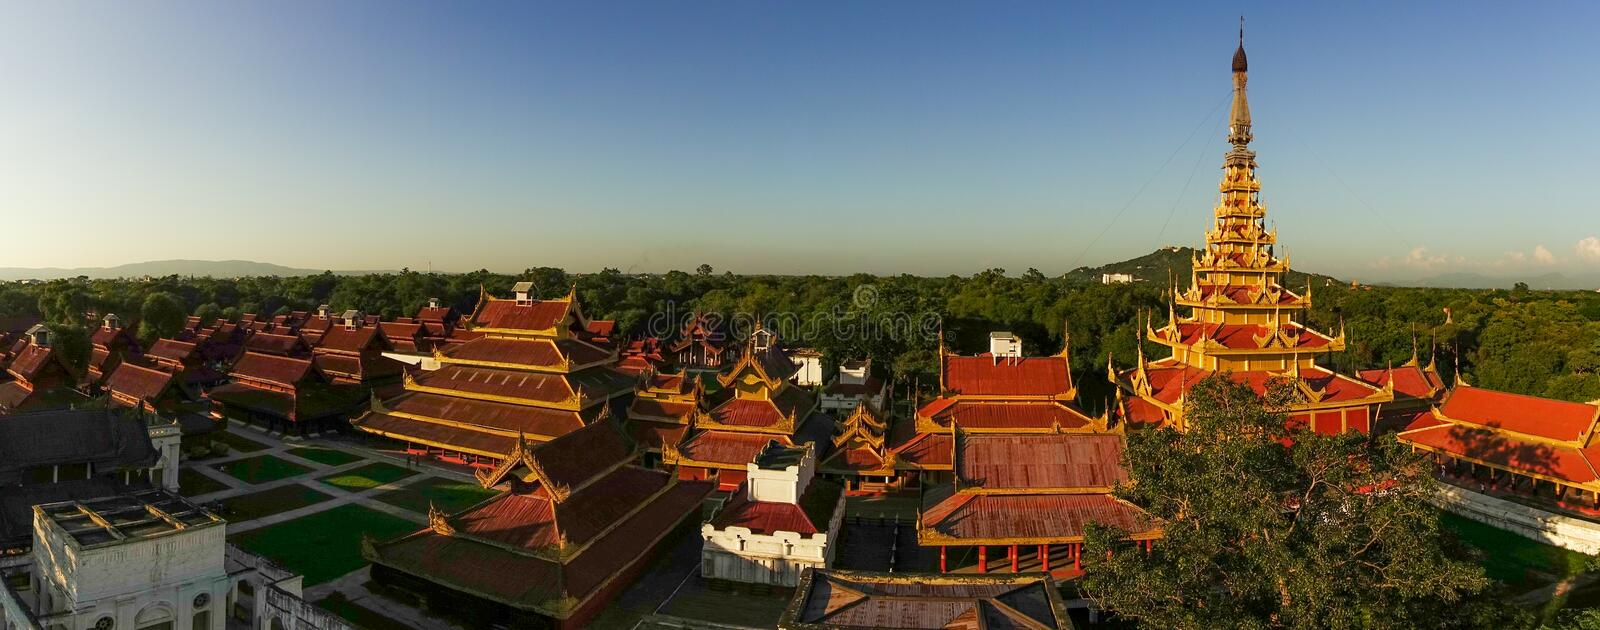 Roofs of Mandalay Palace. Aerial view over the Mandalay Palace Area at eraly sunset stock photo